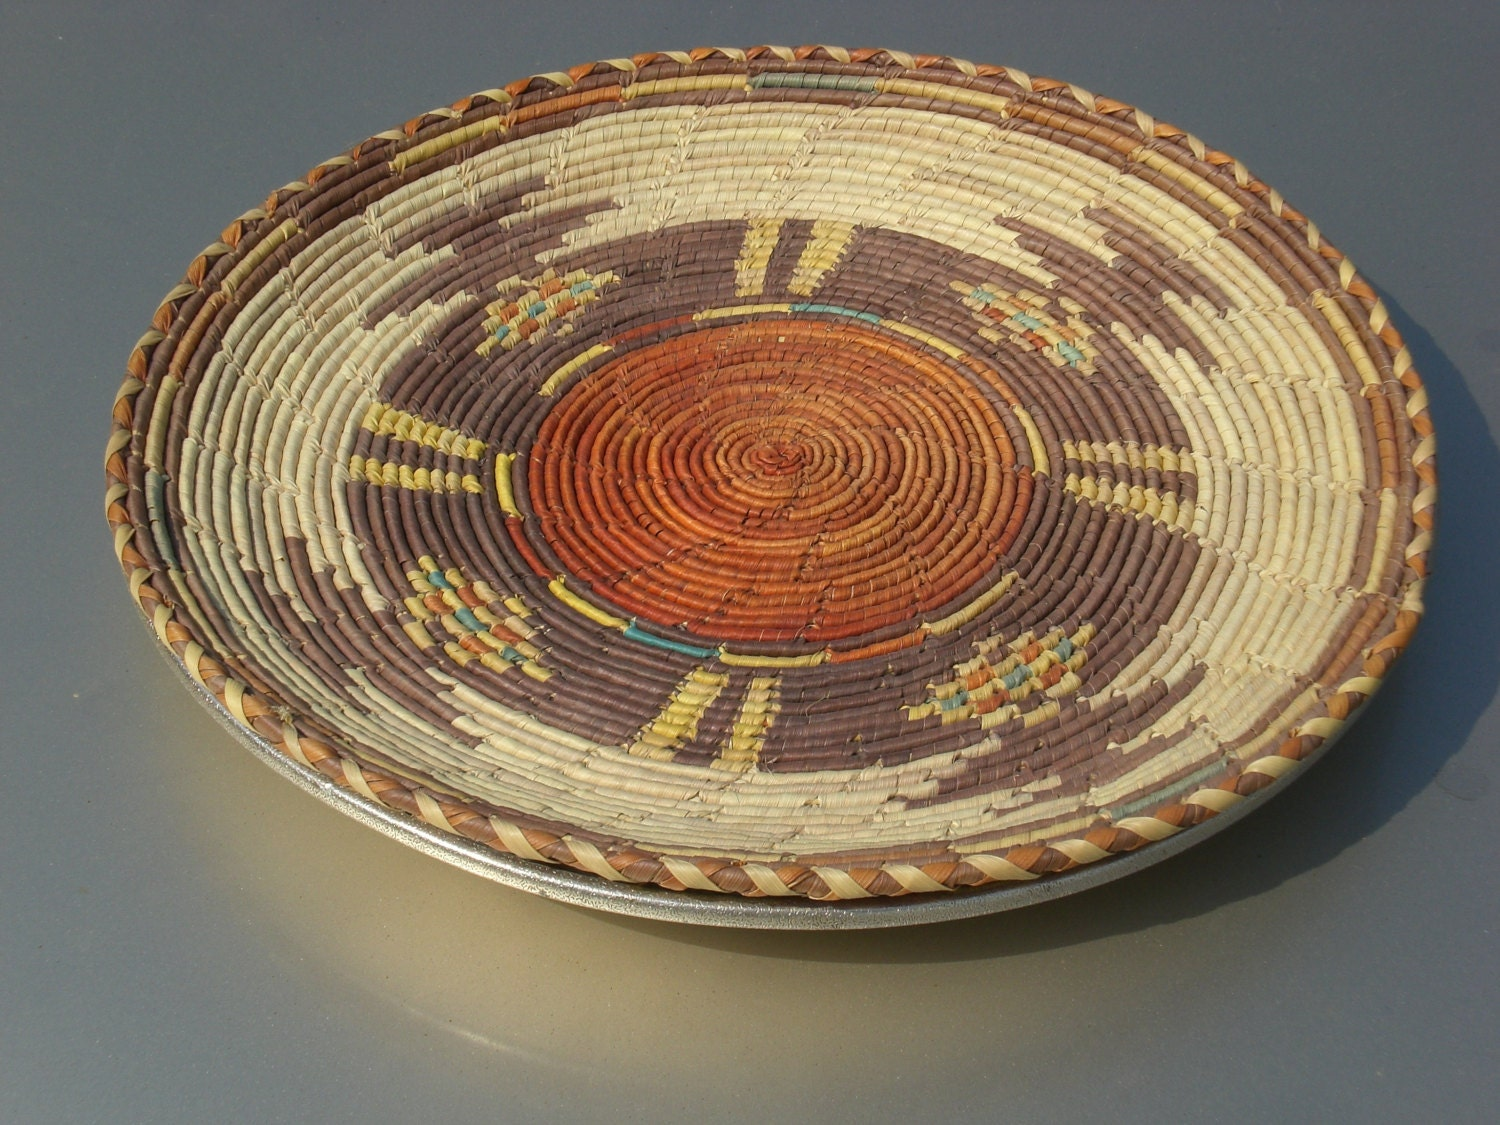 Basket weaving native american : Native american basket tight weave antique by crownandswords